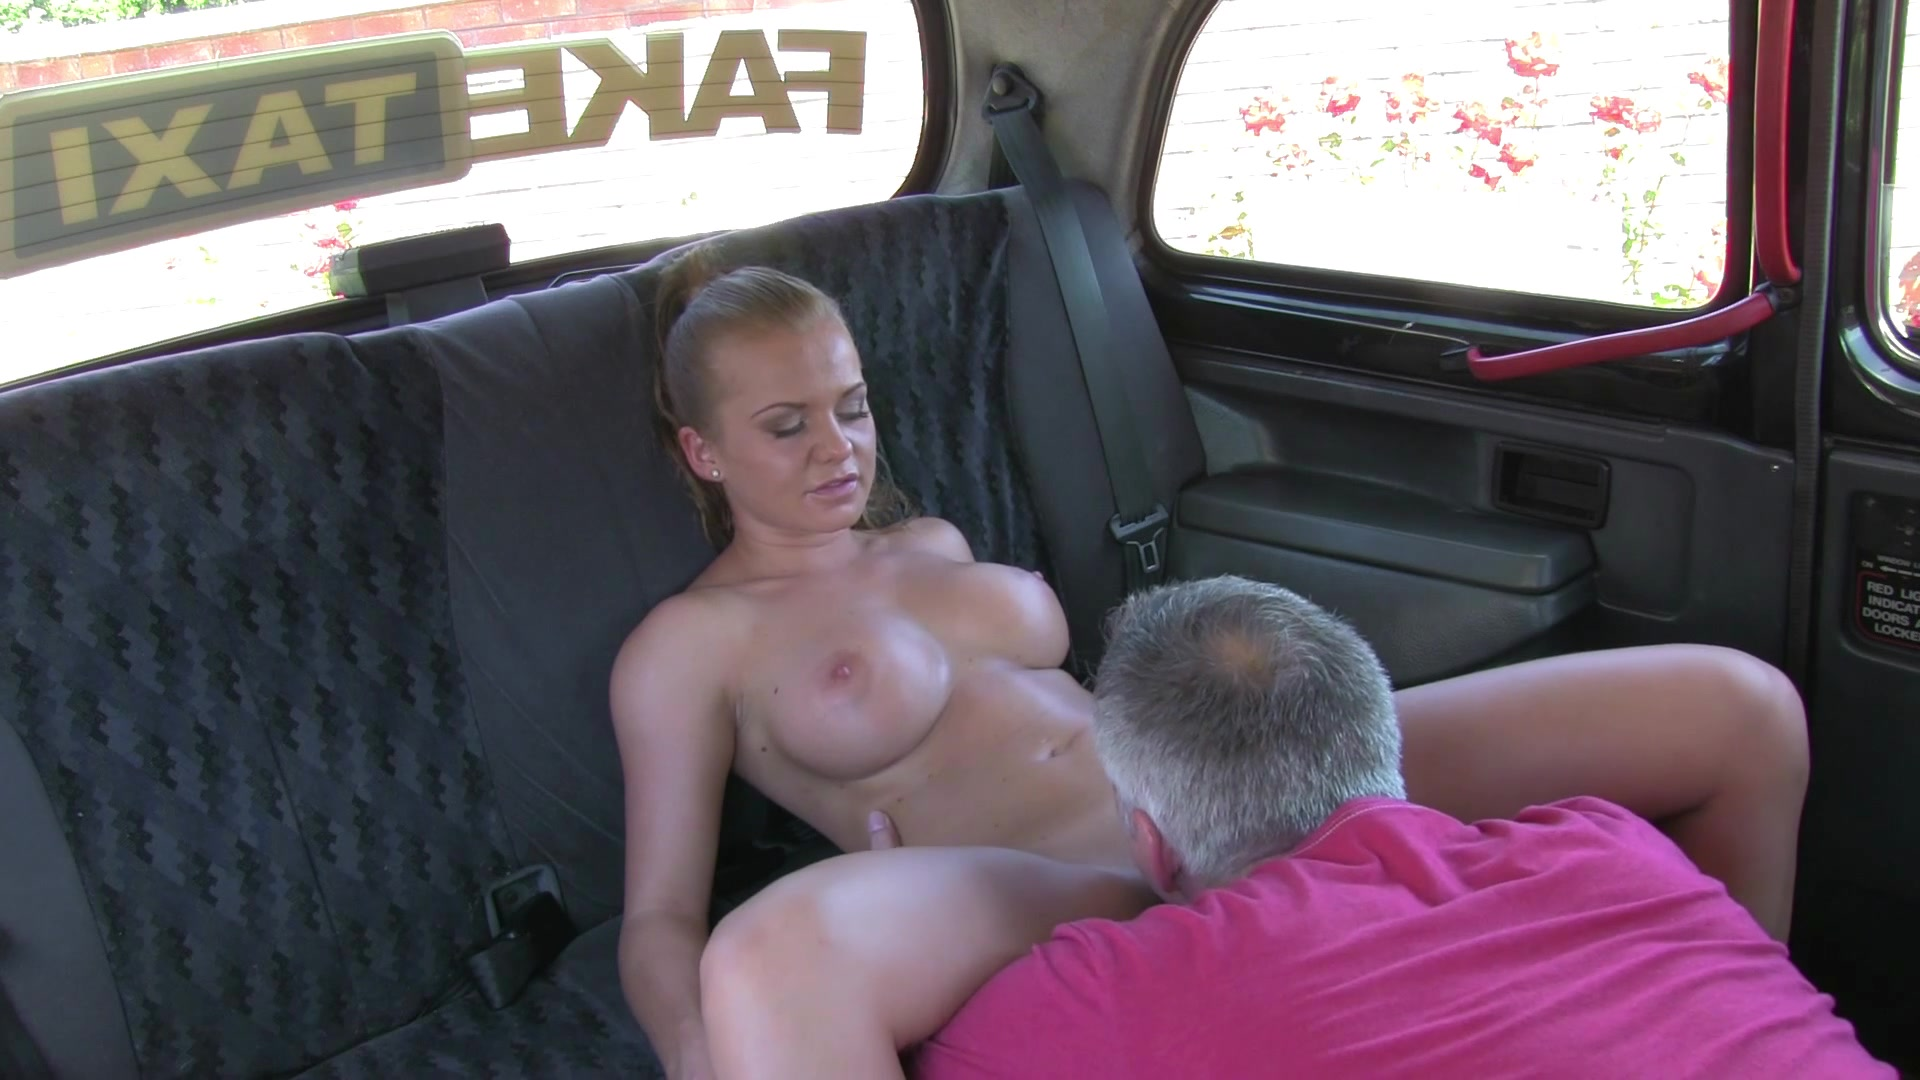 Female Fake Taxi Lesbians Have Pussy Licking Wrestle Fun In Back Of British Taxi